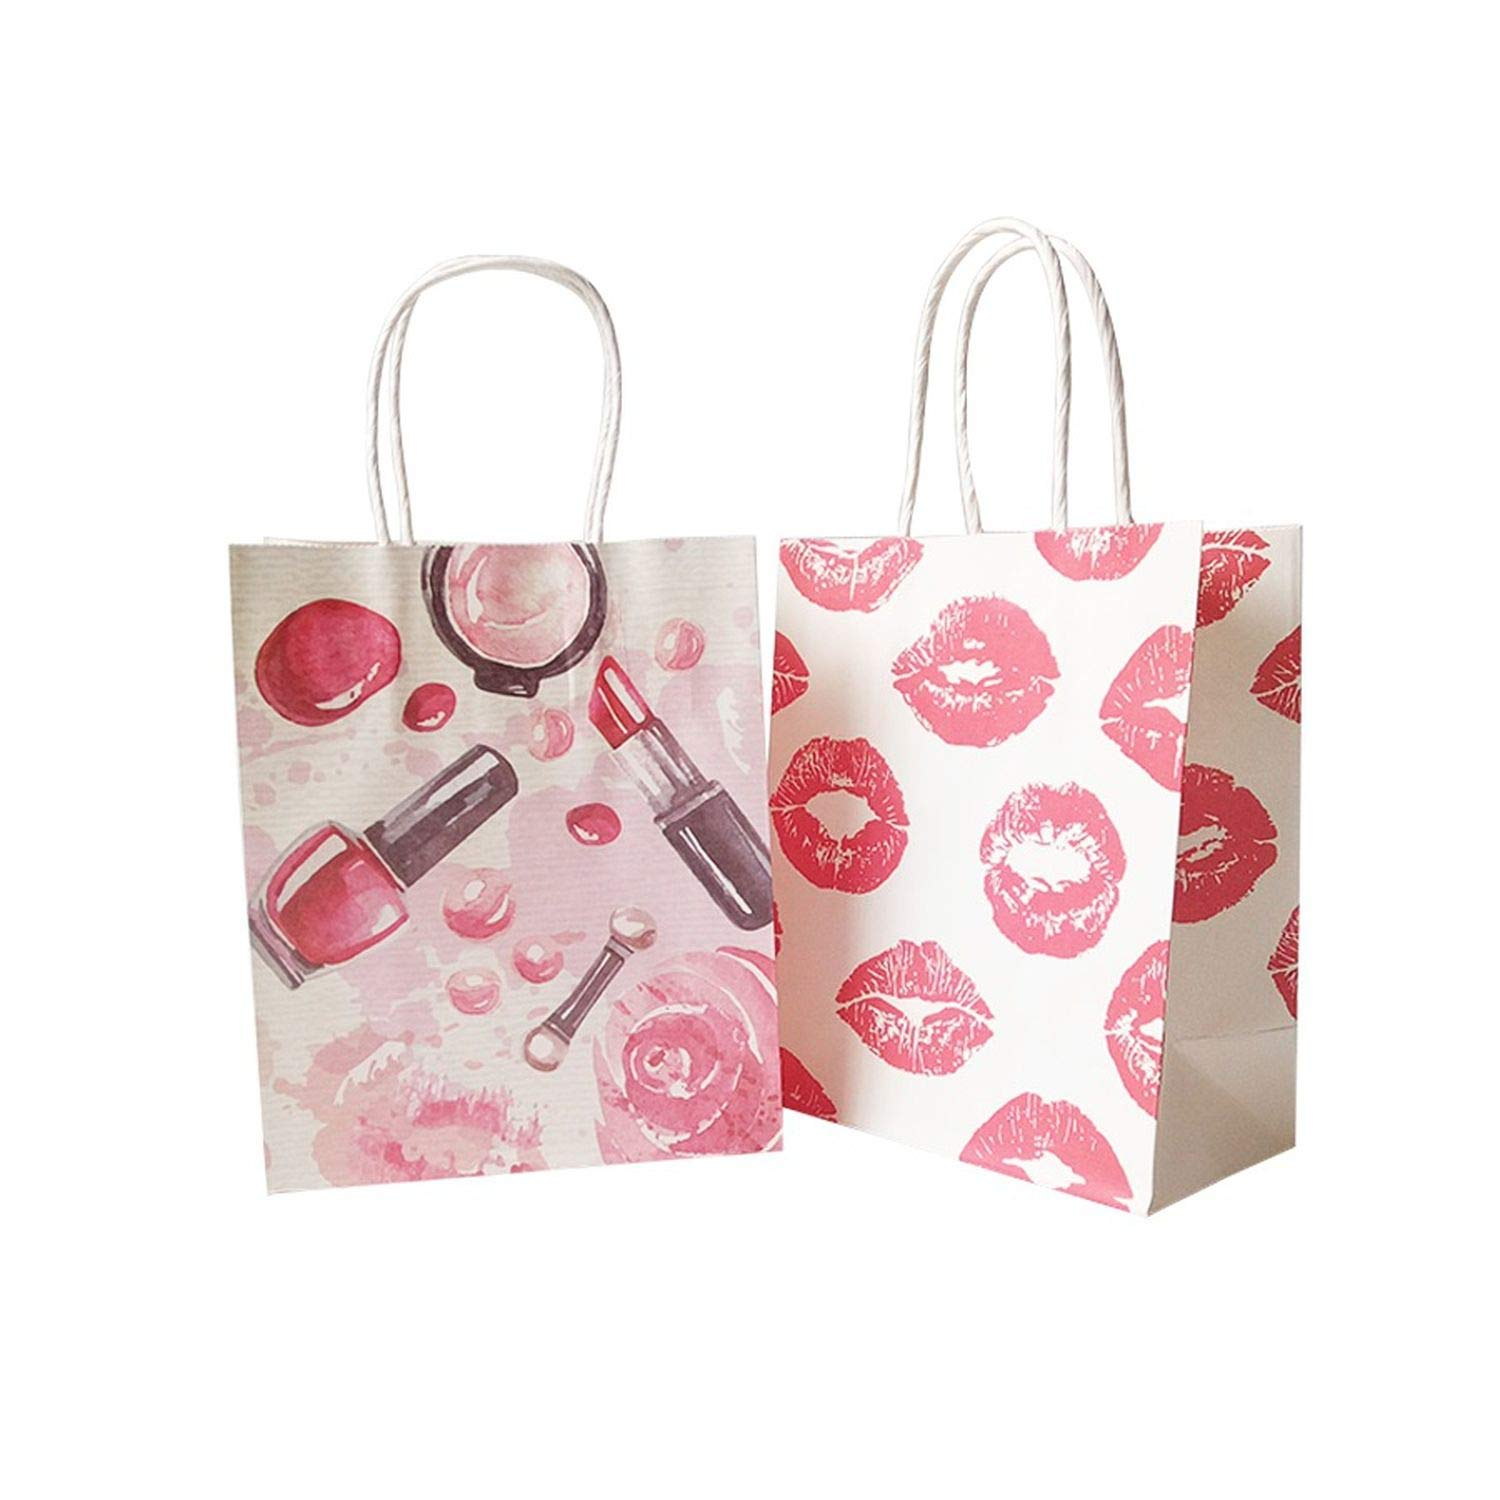 50 Pcs/Lot 15x18 cm Cosmetic Pattern Printing Paper Bags with Handle Gift Bags Party Favor Wedding Packaging Storage Bags,Perfume by JIA-WALK (Image #3)